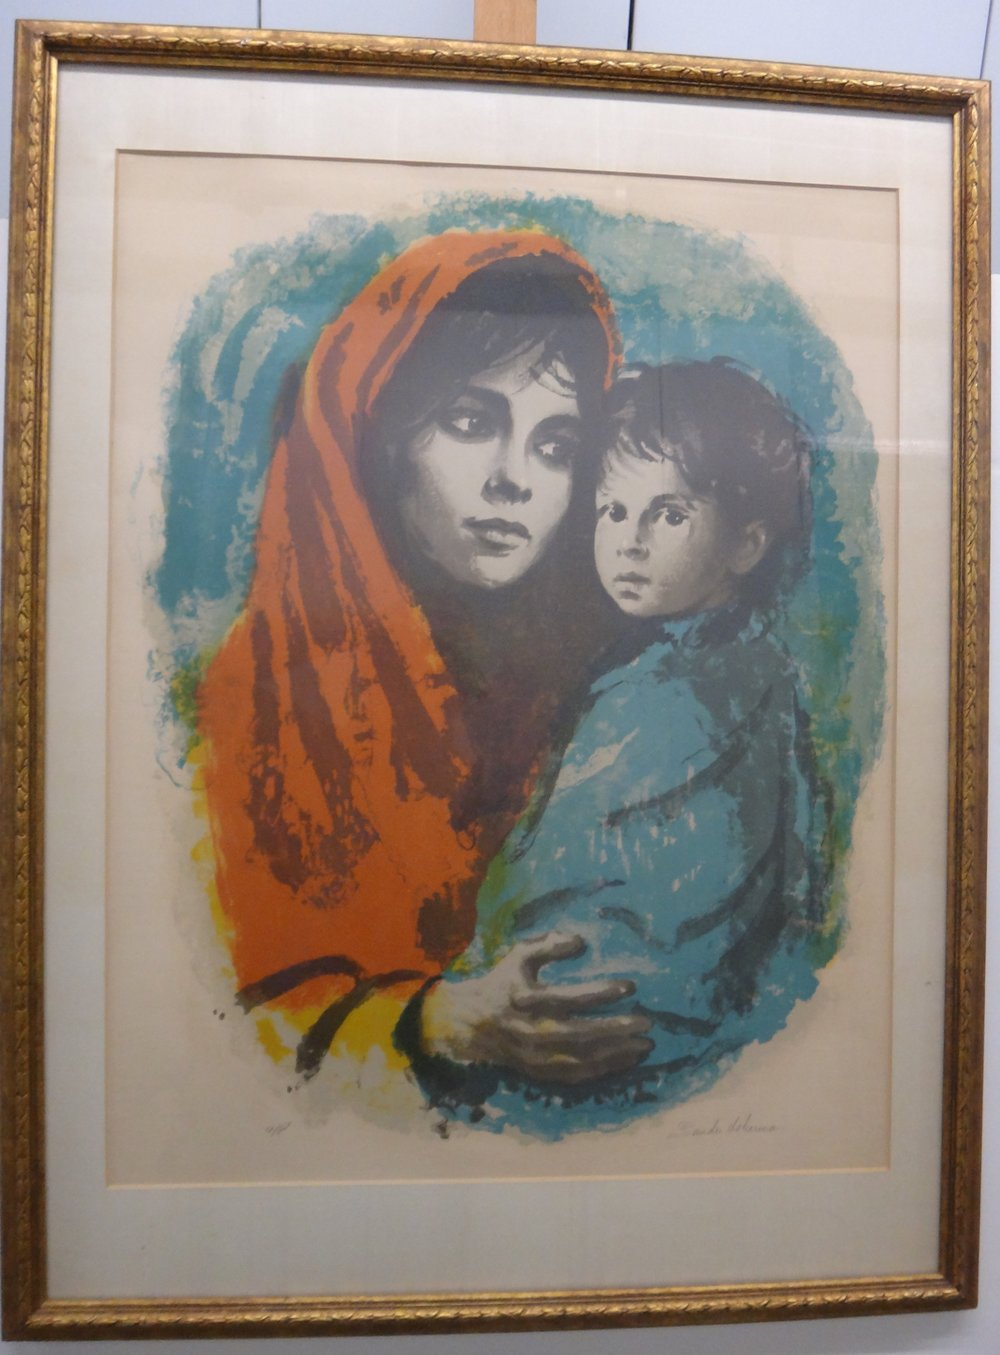 "Title: Untitled  Medium: Lithograph on Paper  Dimensions: 27"" x 21 1/2""  Framed: Yes  Price: Contact for Inquiry"